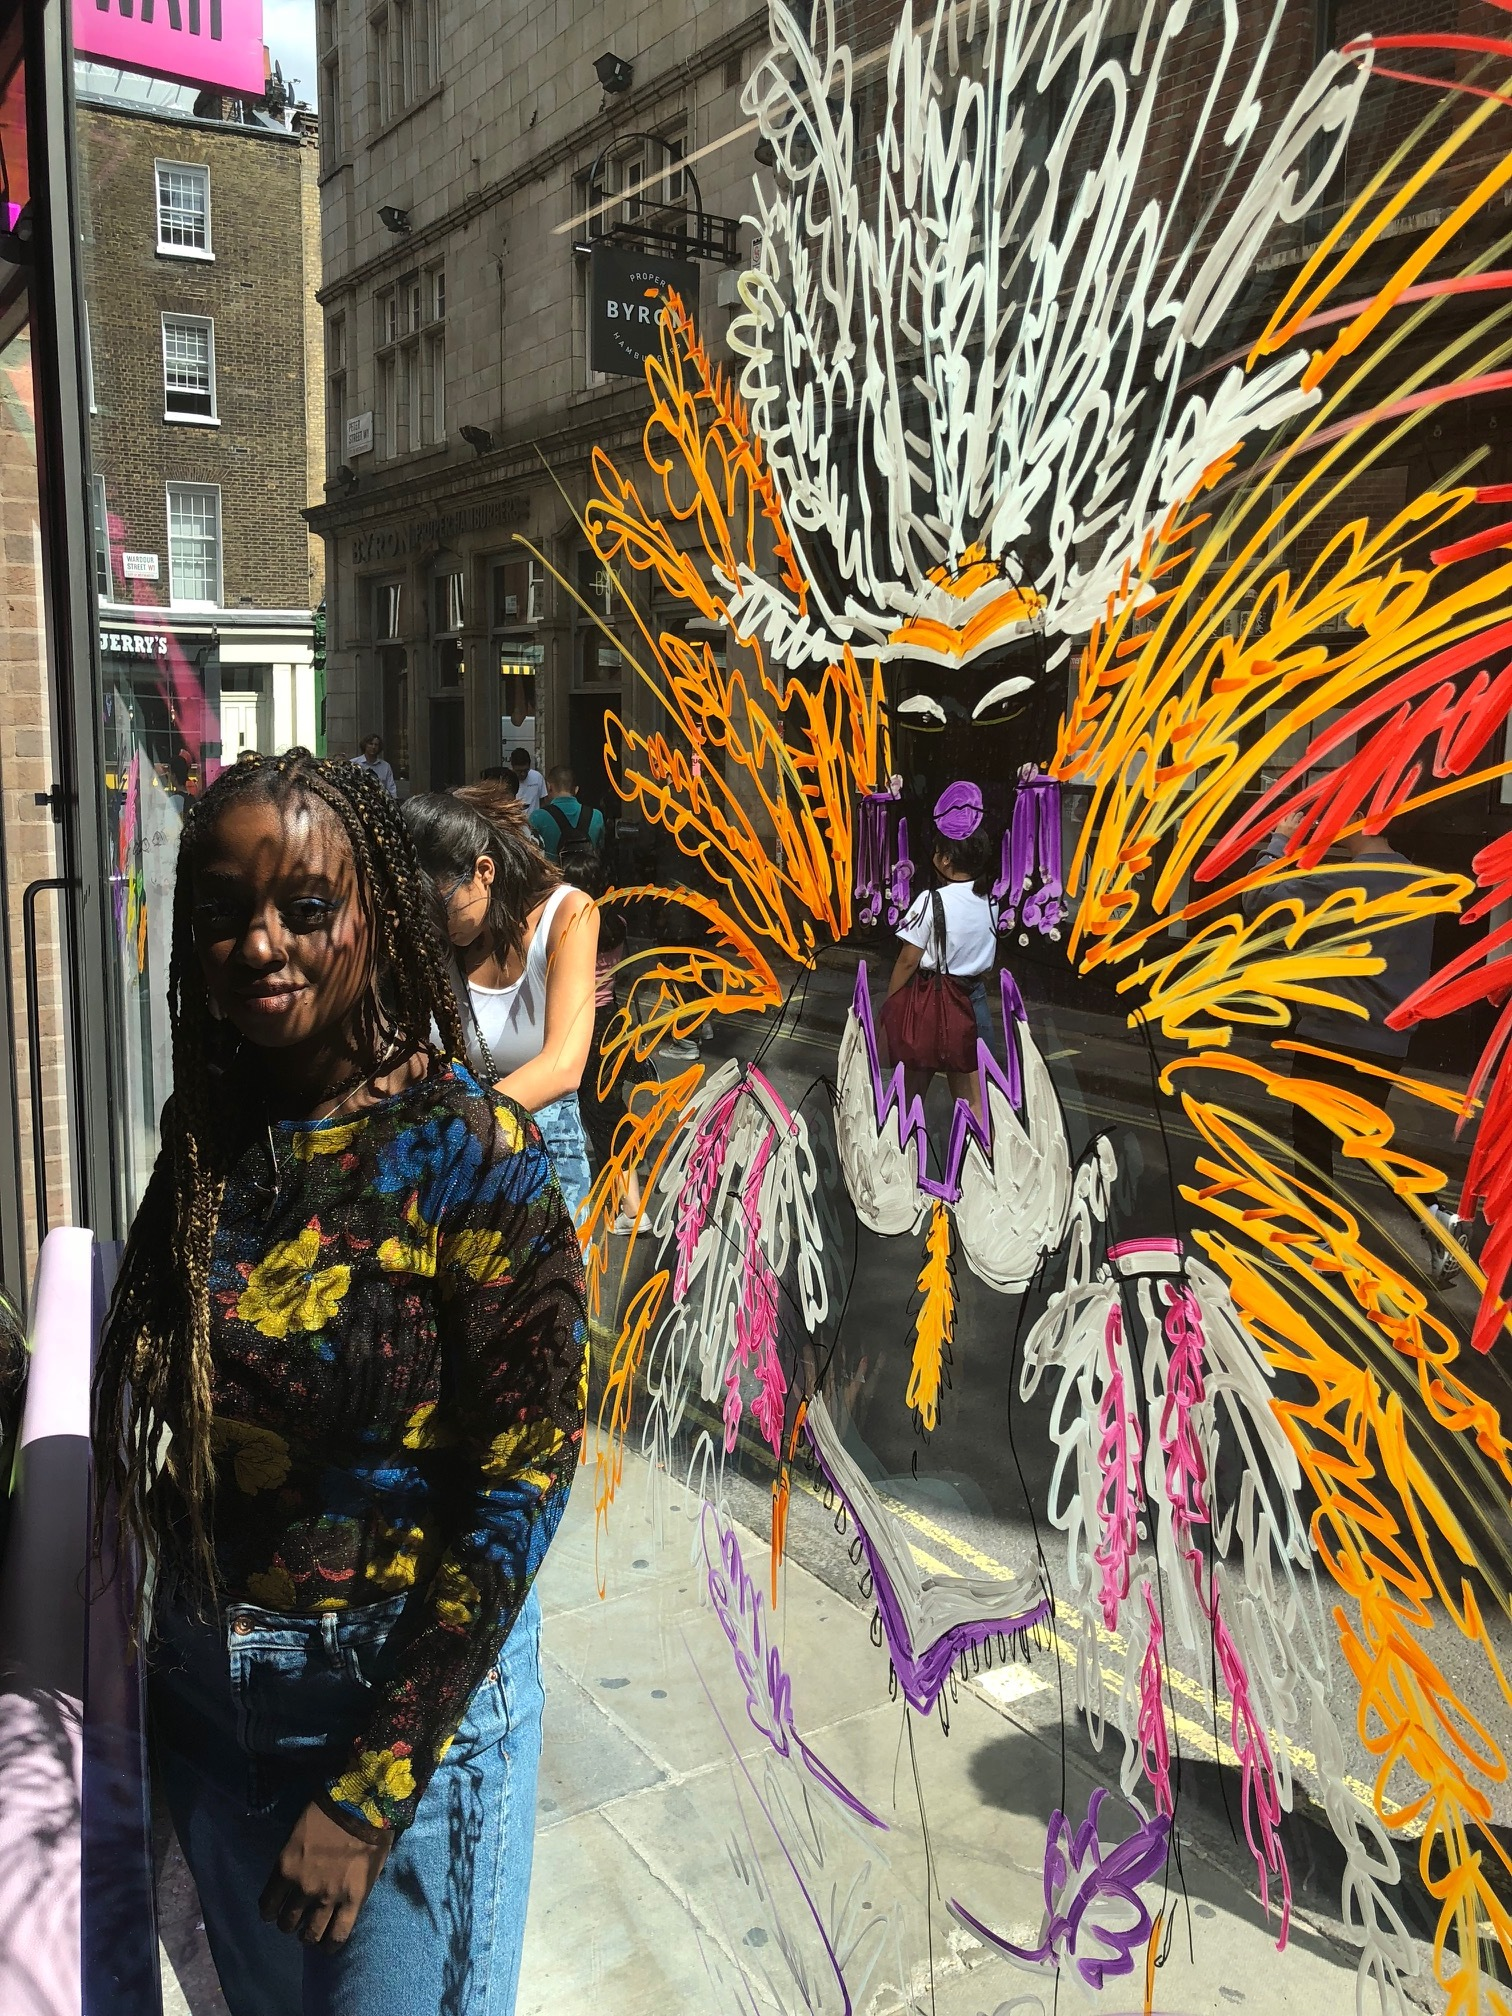 Anjelica Roselyn And Part of Her Carnival Mural